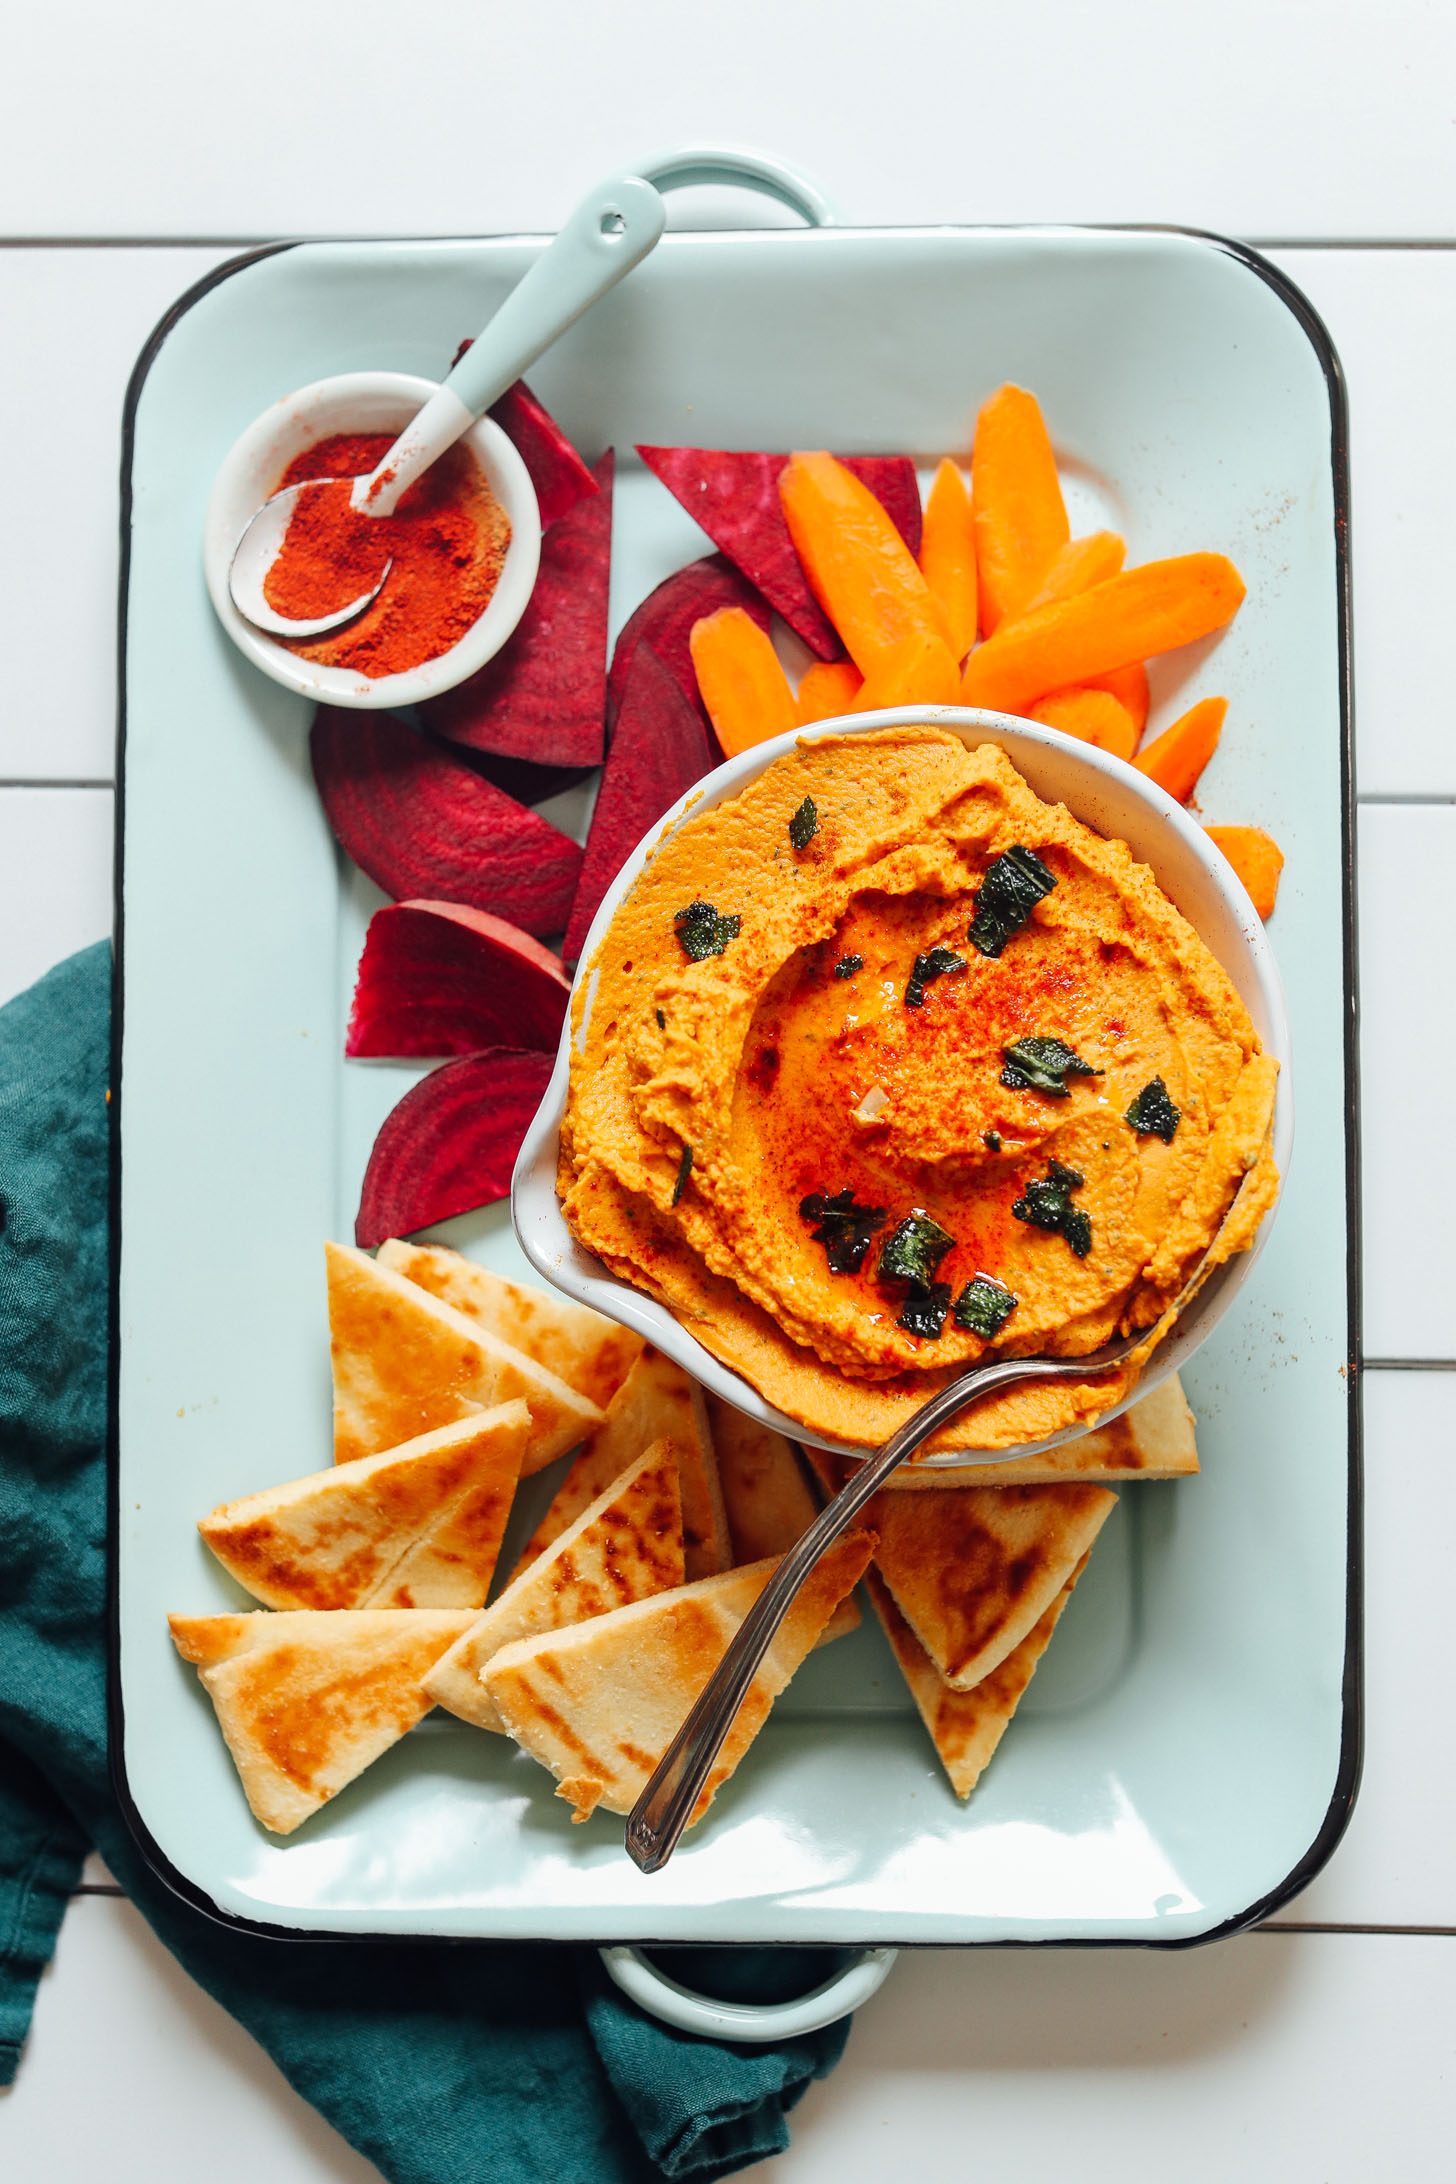 Tray with a bowl of our White Bean Pumpkin Hummus recipe with beet, carrot, and pita for dipping